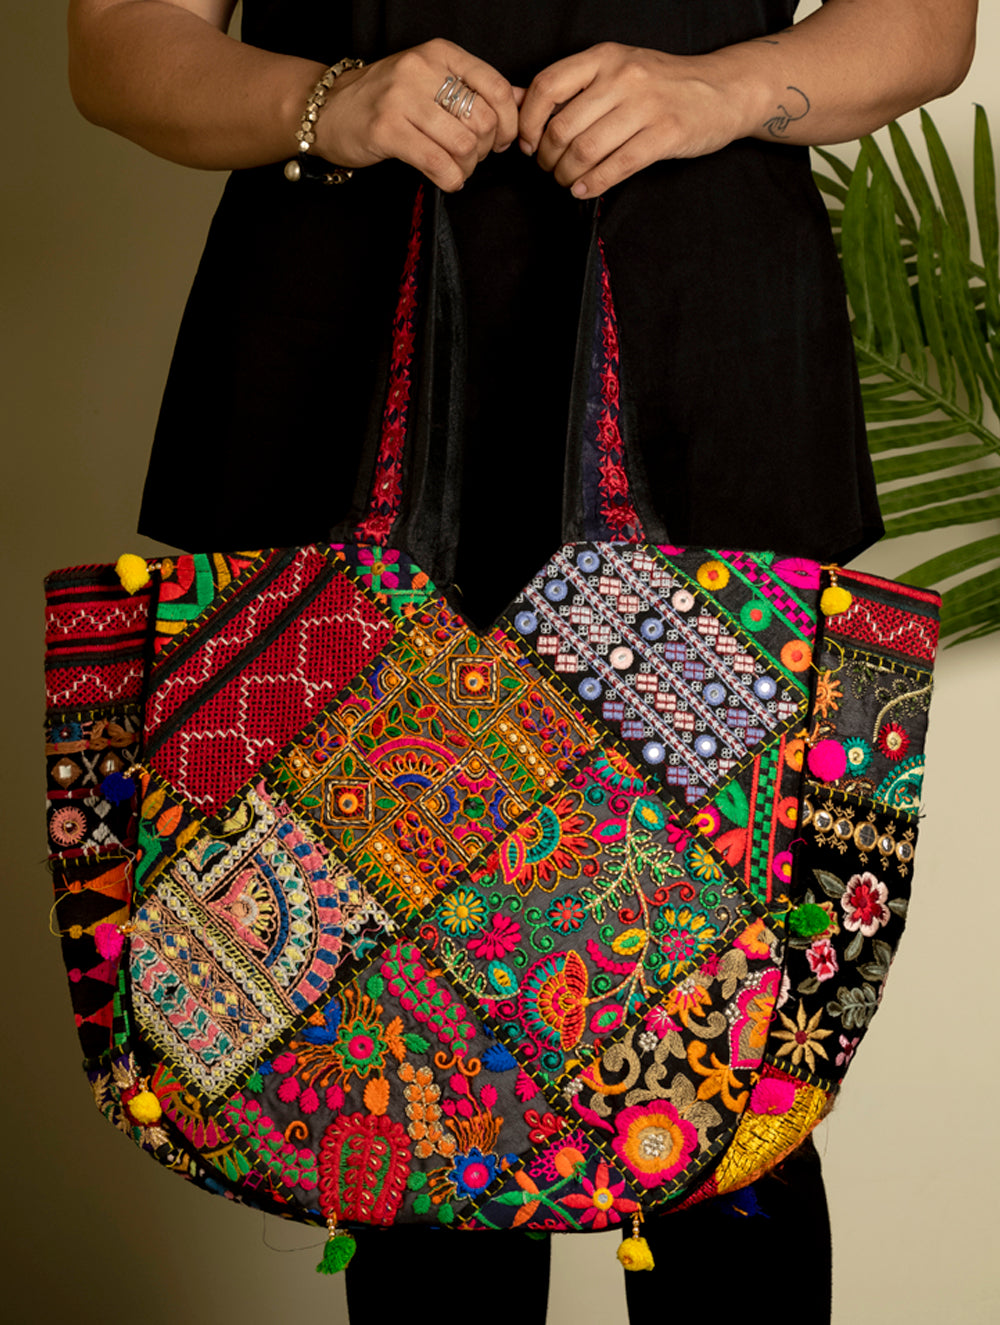 fdf506019c Kutch Patchwork Banjara Large Bag Multicoloured. These are patchwork bags  made from embroidered cloth